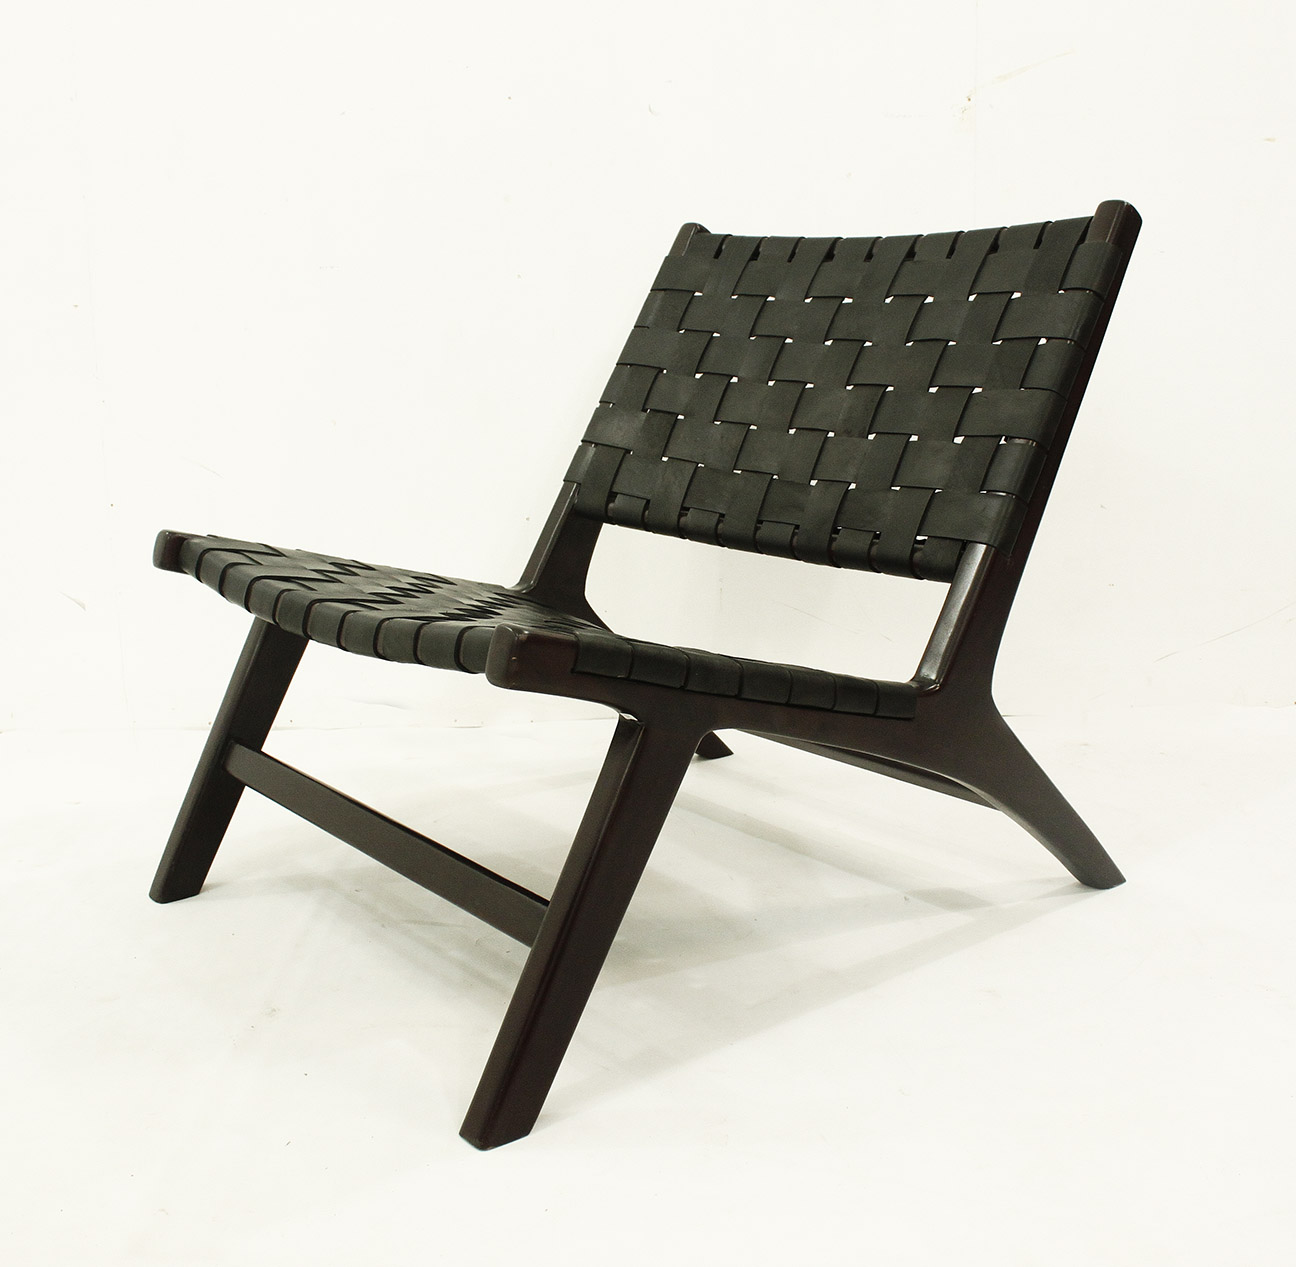 Chaise noire los angeles los angeles zwarte stoel los for Chaise 64 cm